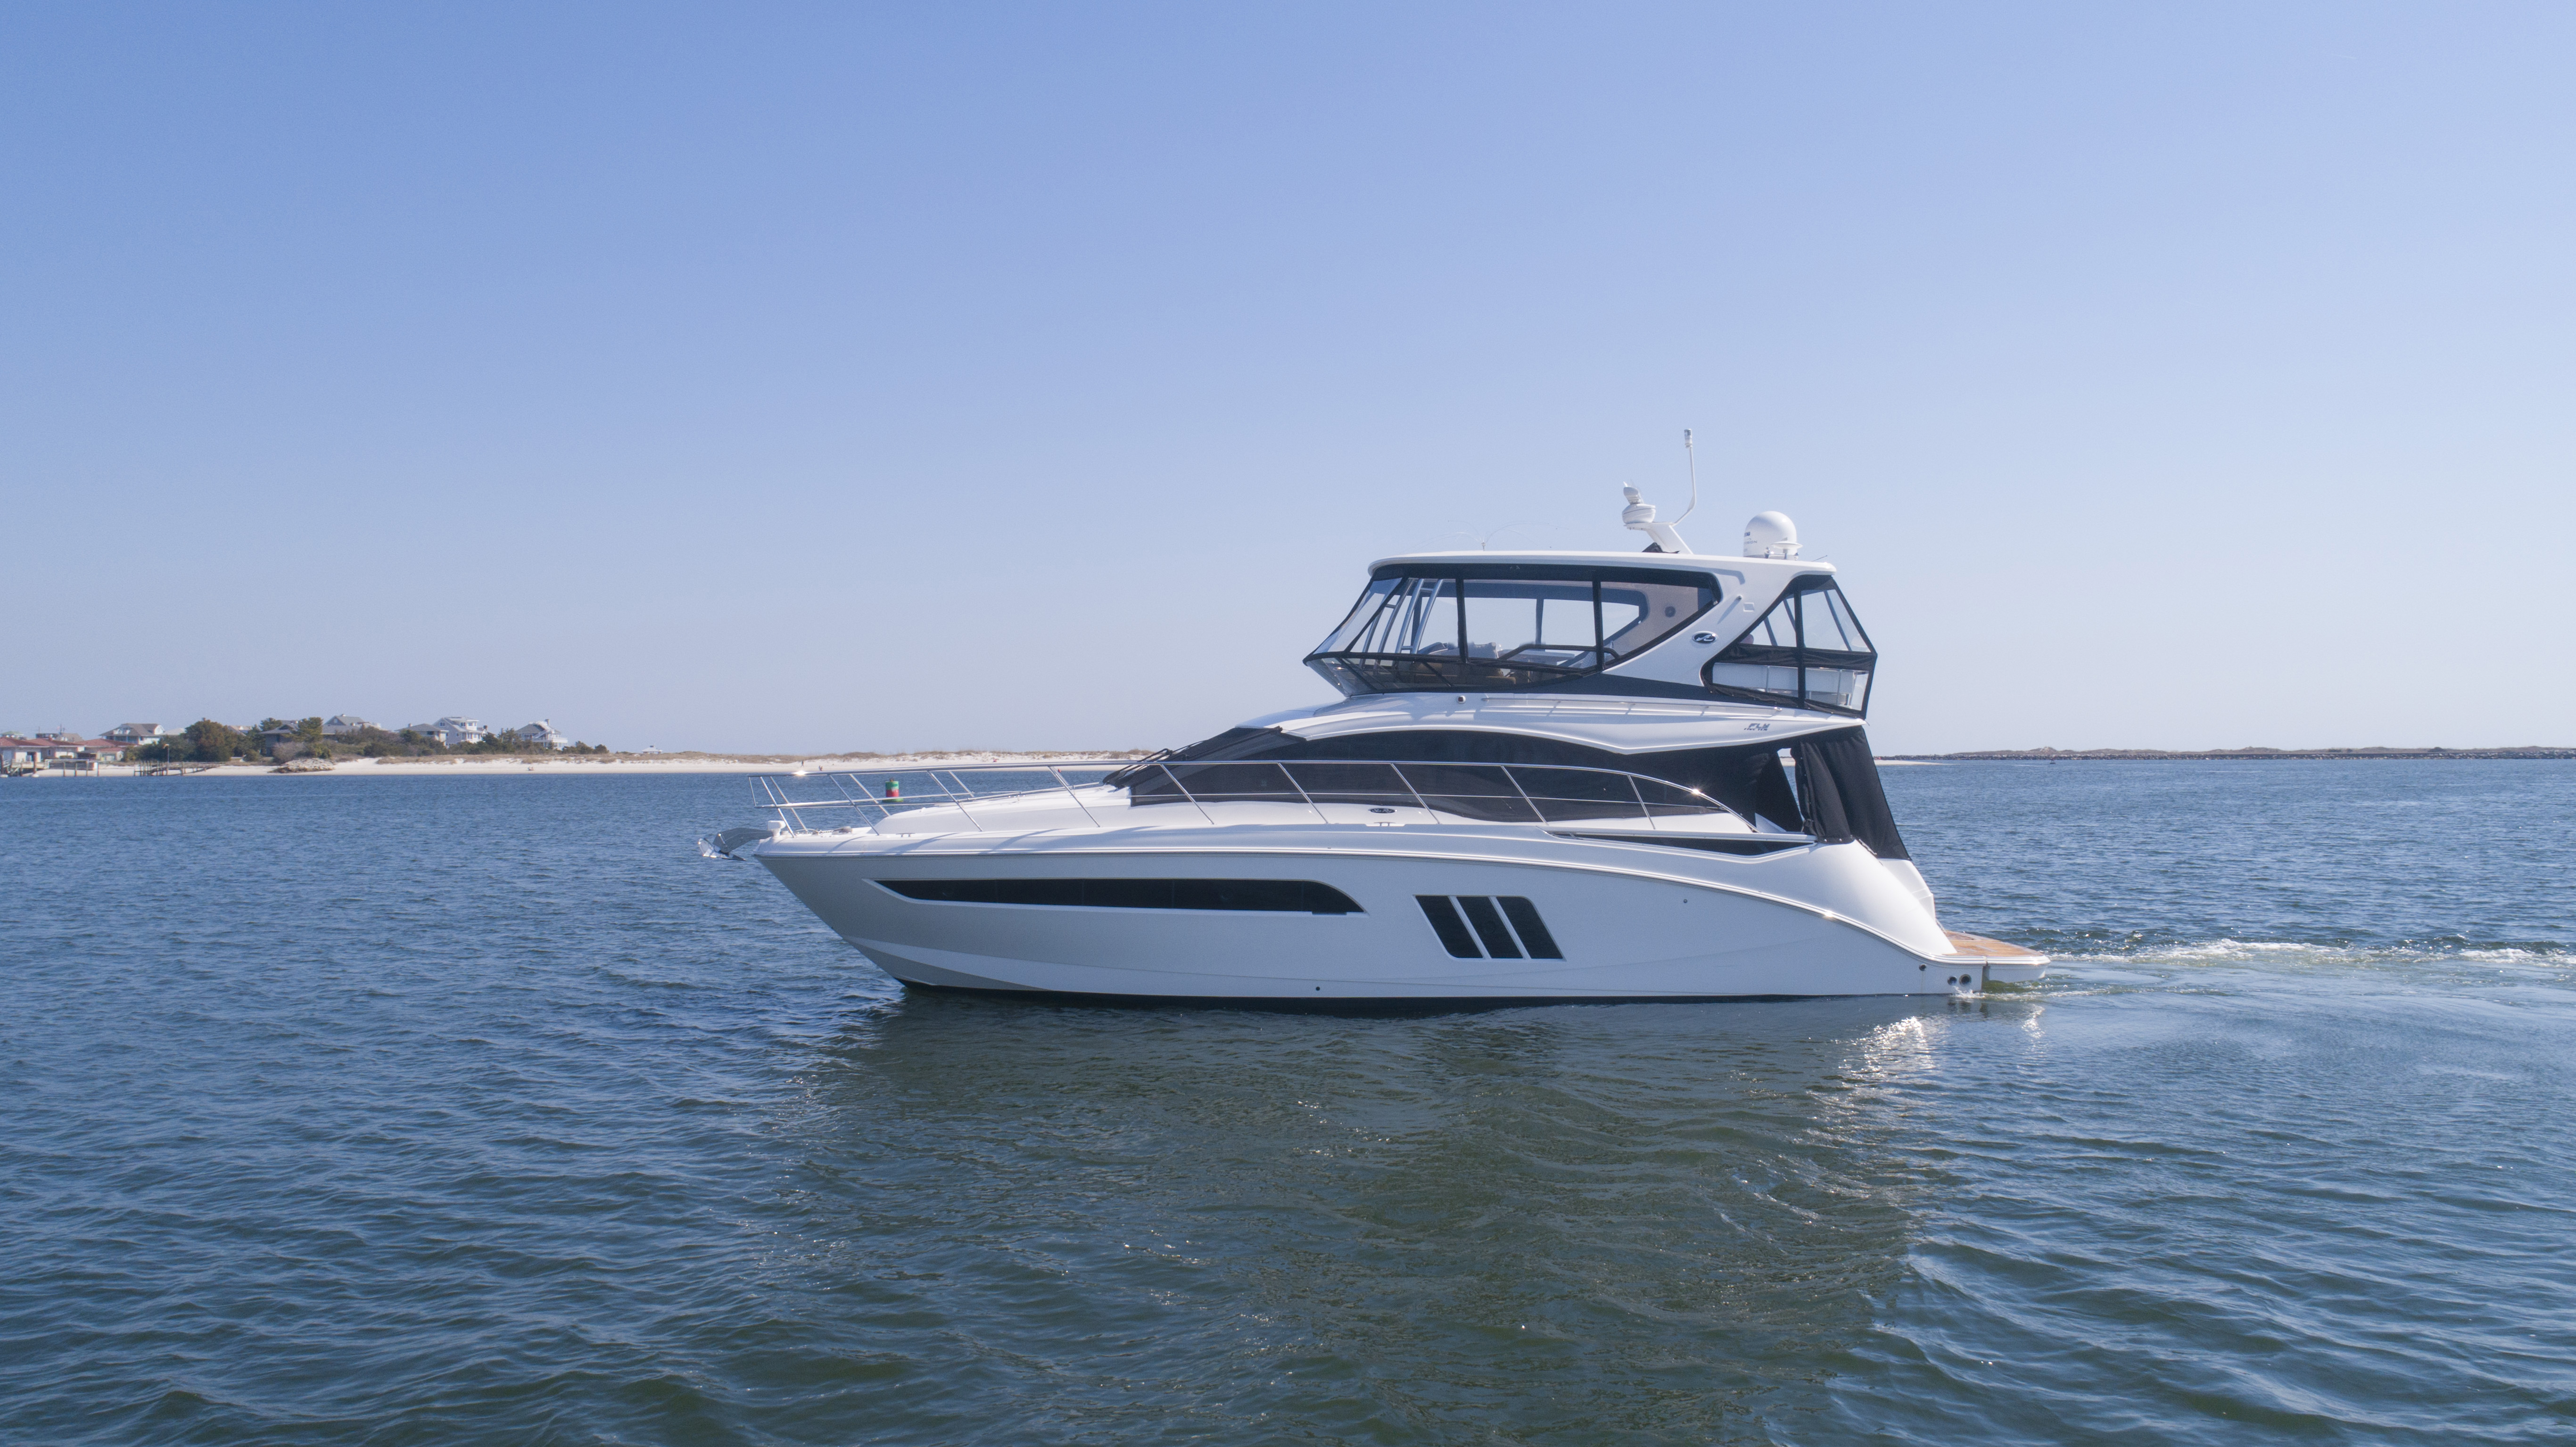 2017 SEA RAY 510 Fly Extended Hardtop